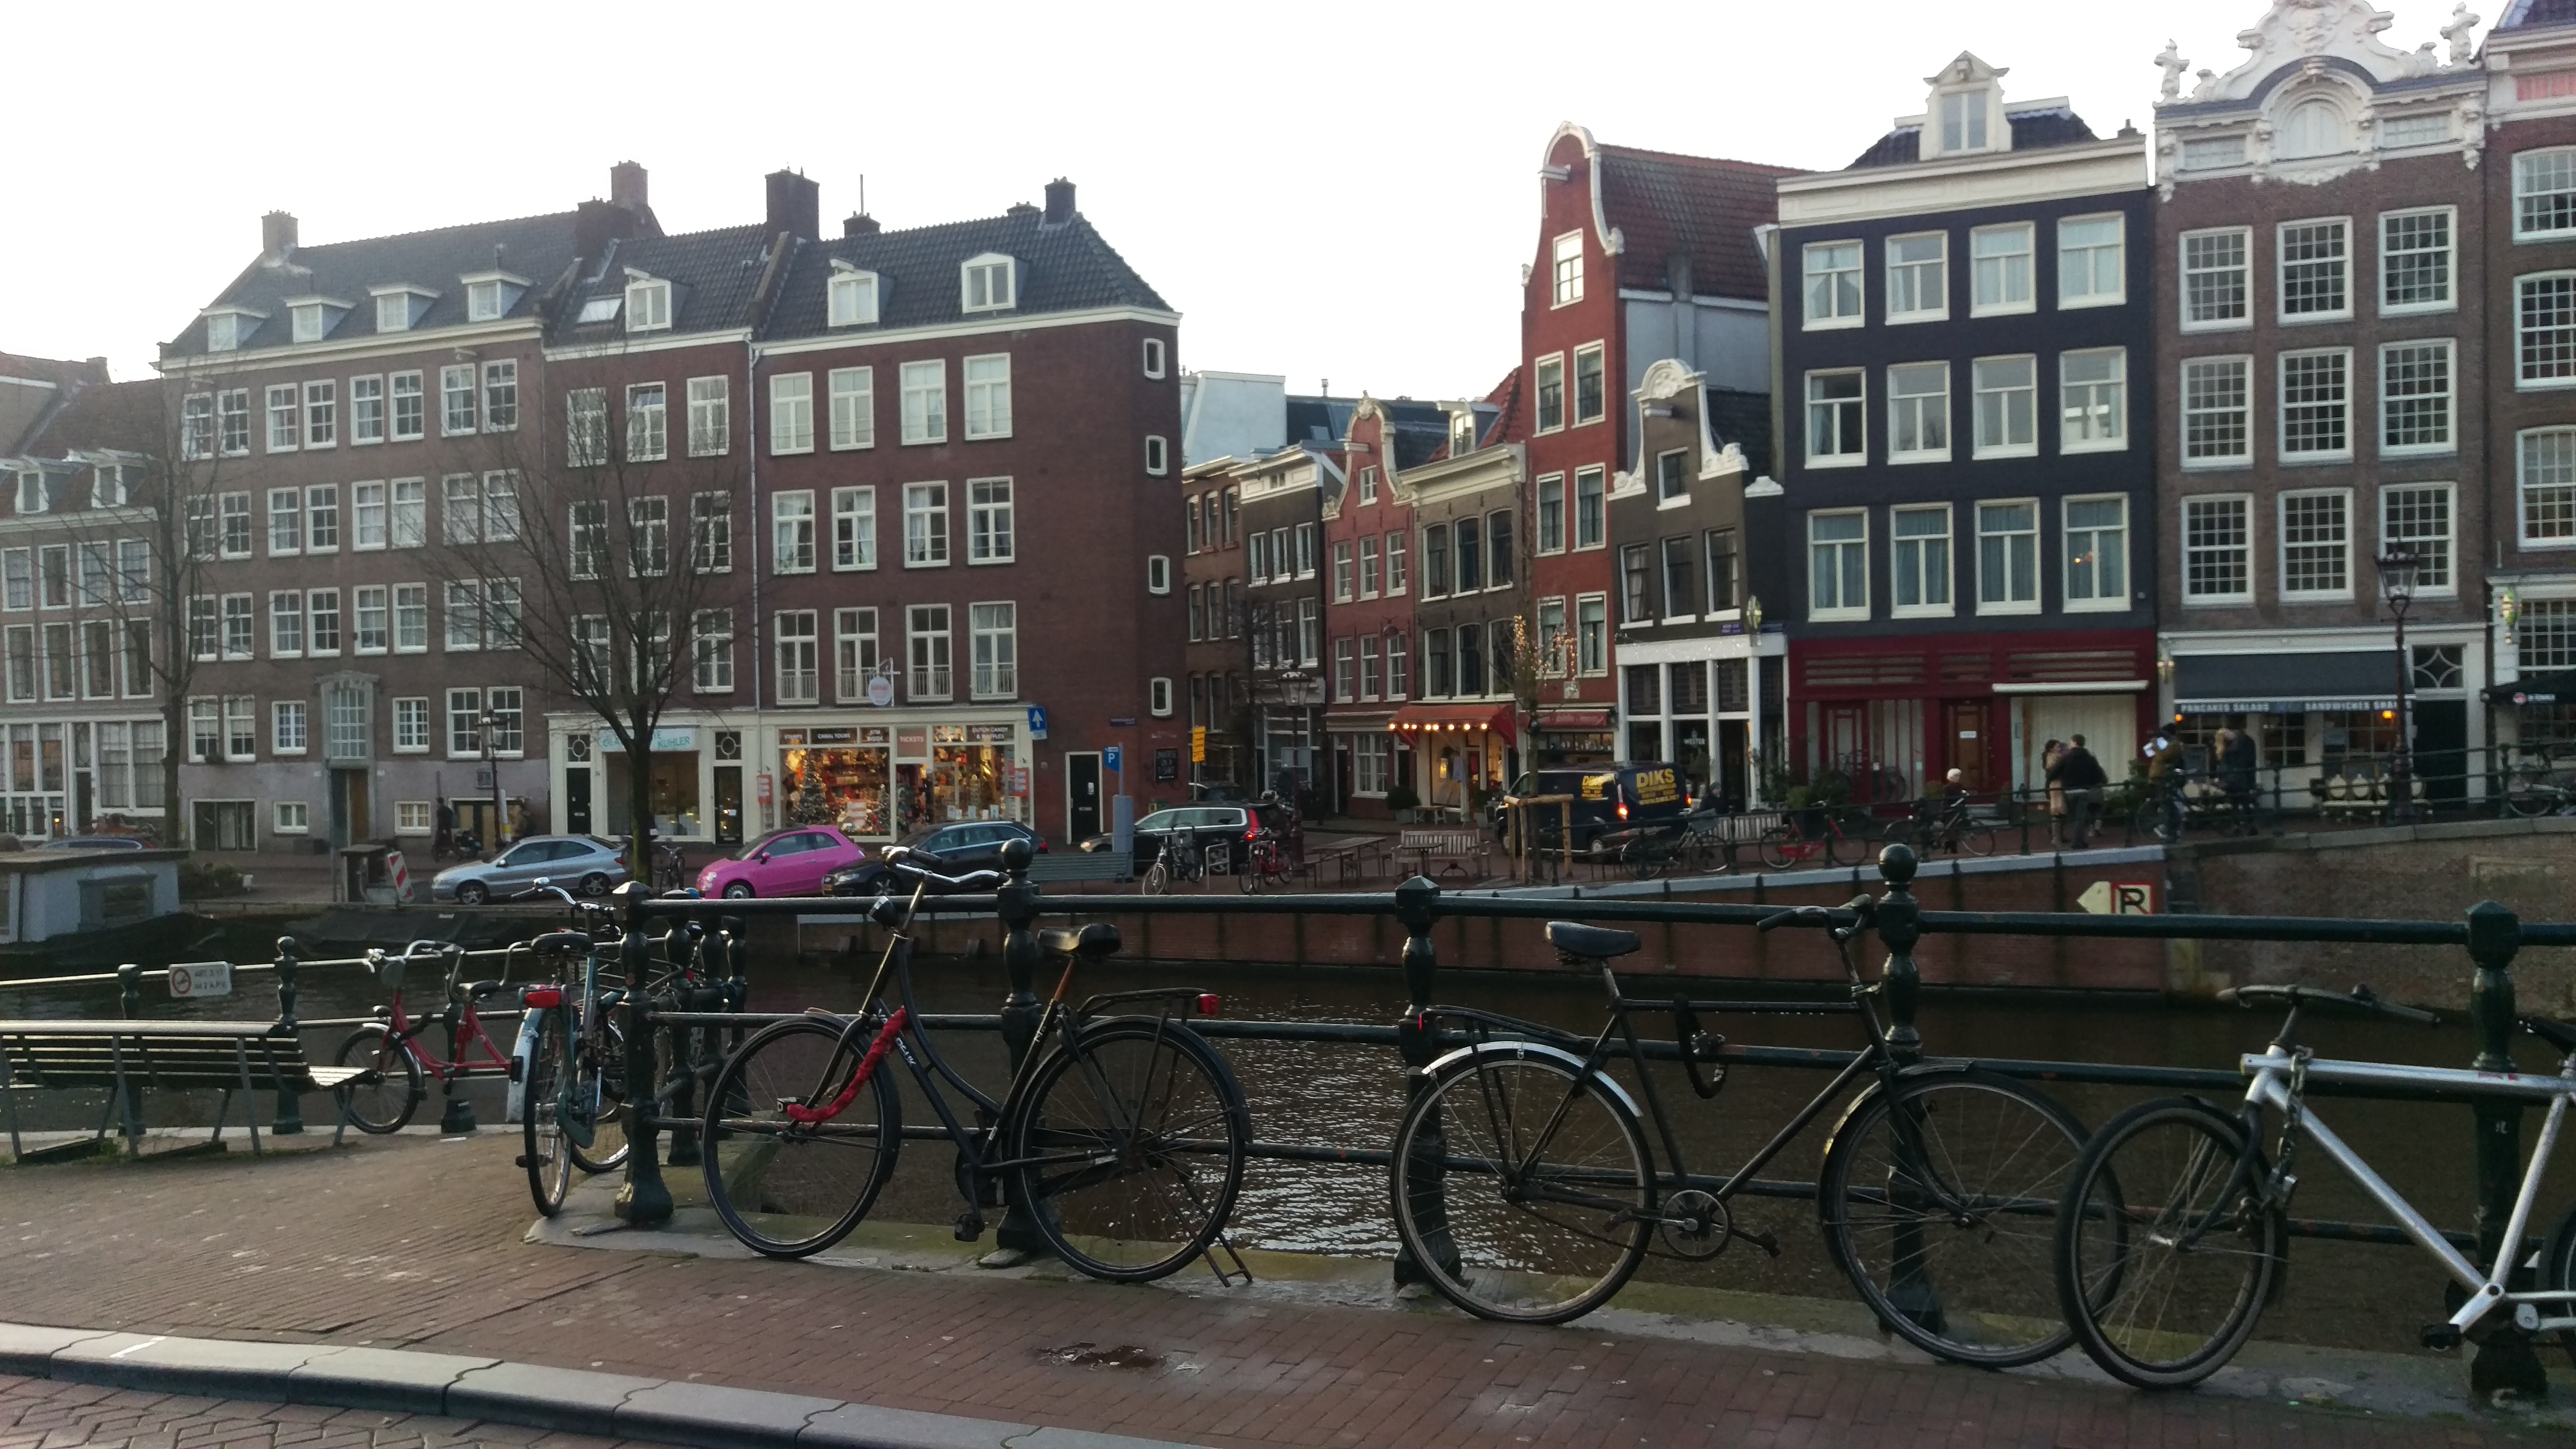 Buildings with bikes parked next to the canal, Amsterdam.